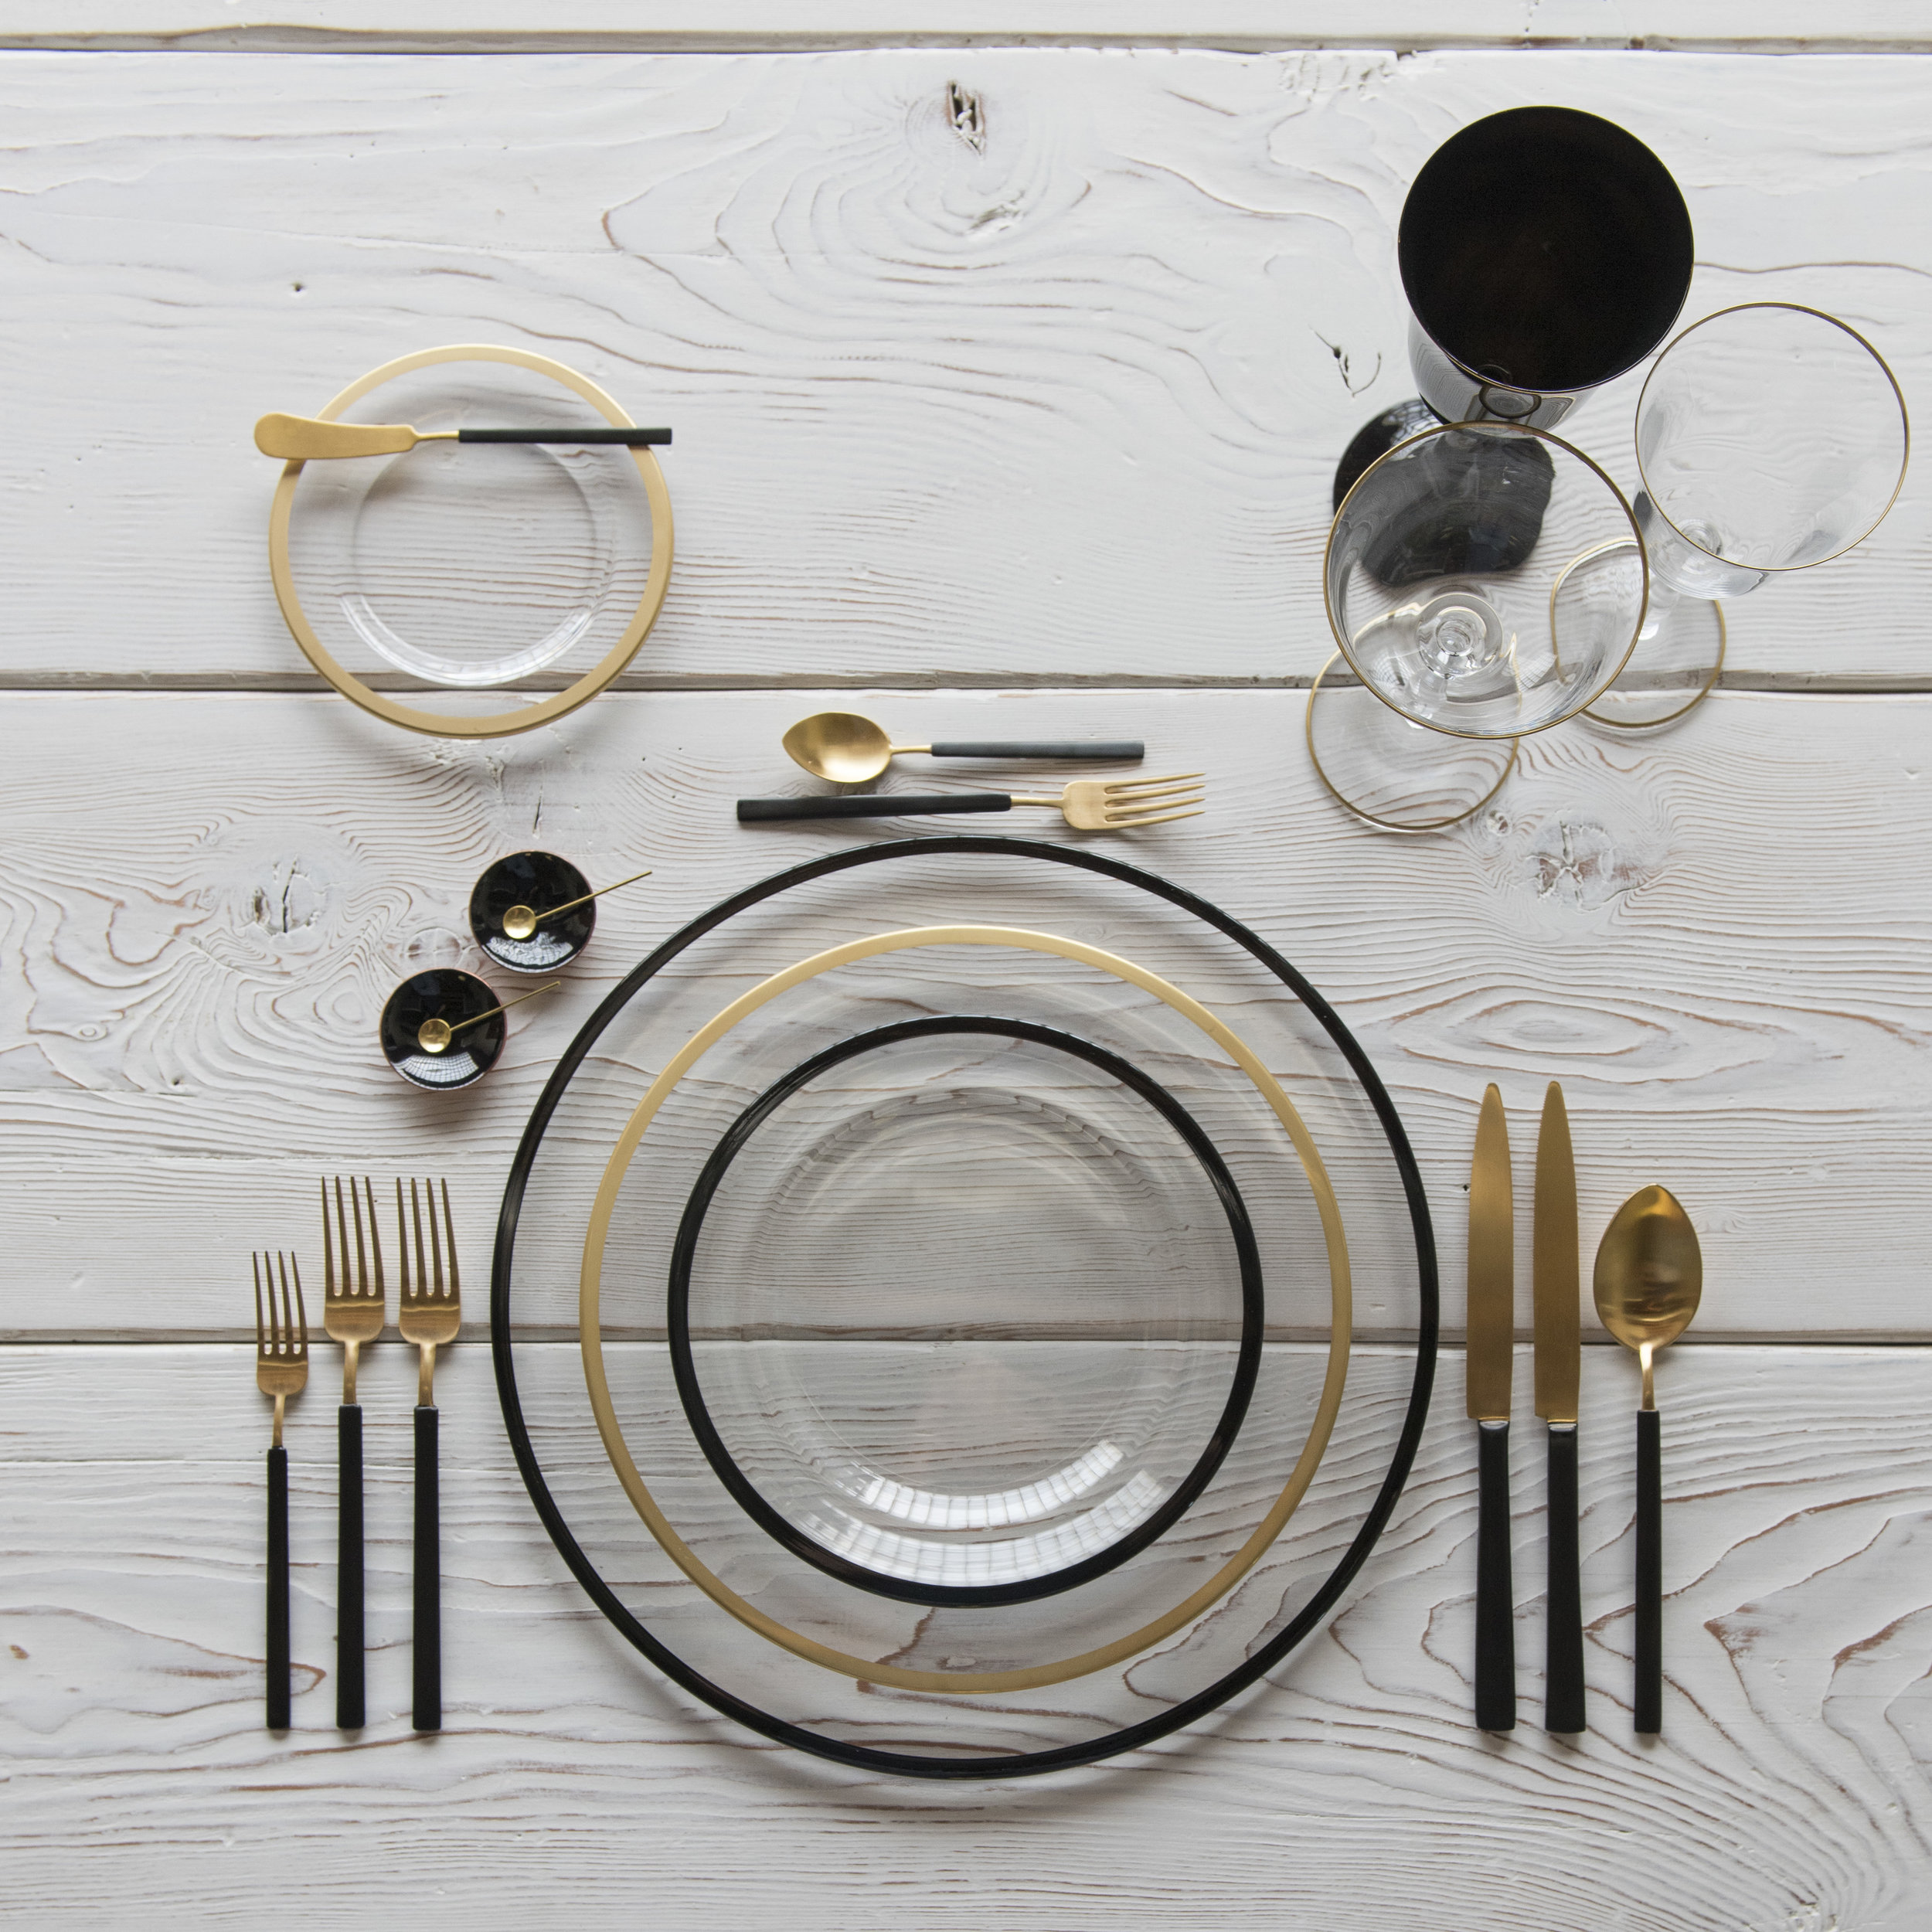 RENT: Halo Glass Chargers/Dinnerware in Black + Halo Glass Dinnerware in 24k Gold + Axel Flatware in Matte 24k Gold/Black + Chloe 24k Gold Rimmed Stemware + Chloe 24k Gold Rimmed Goblet it Black + Black Enamel Salt Cellars + Tiny Gold Spoons  SHOP: Halo Glass Chargers/Dinnerware in Black + Halo Glass Dinnerware in 24k Gold + Chloe 24k Gold Rimmed Stemware + Black Enamel Salt Cellars + Tiny Gold Spoons